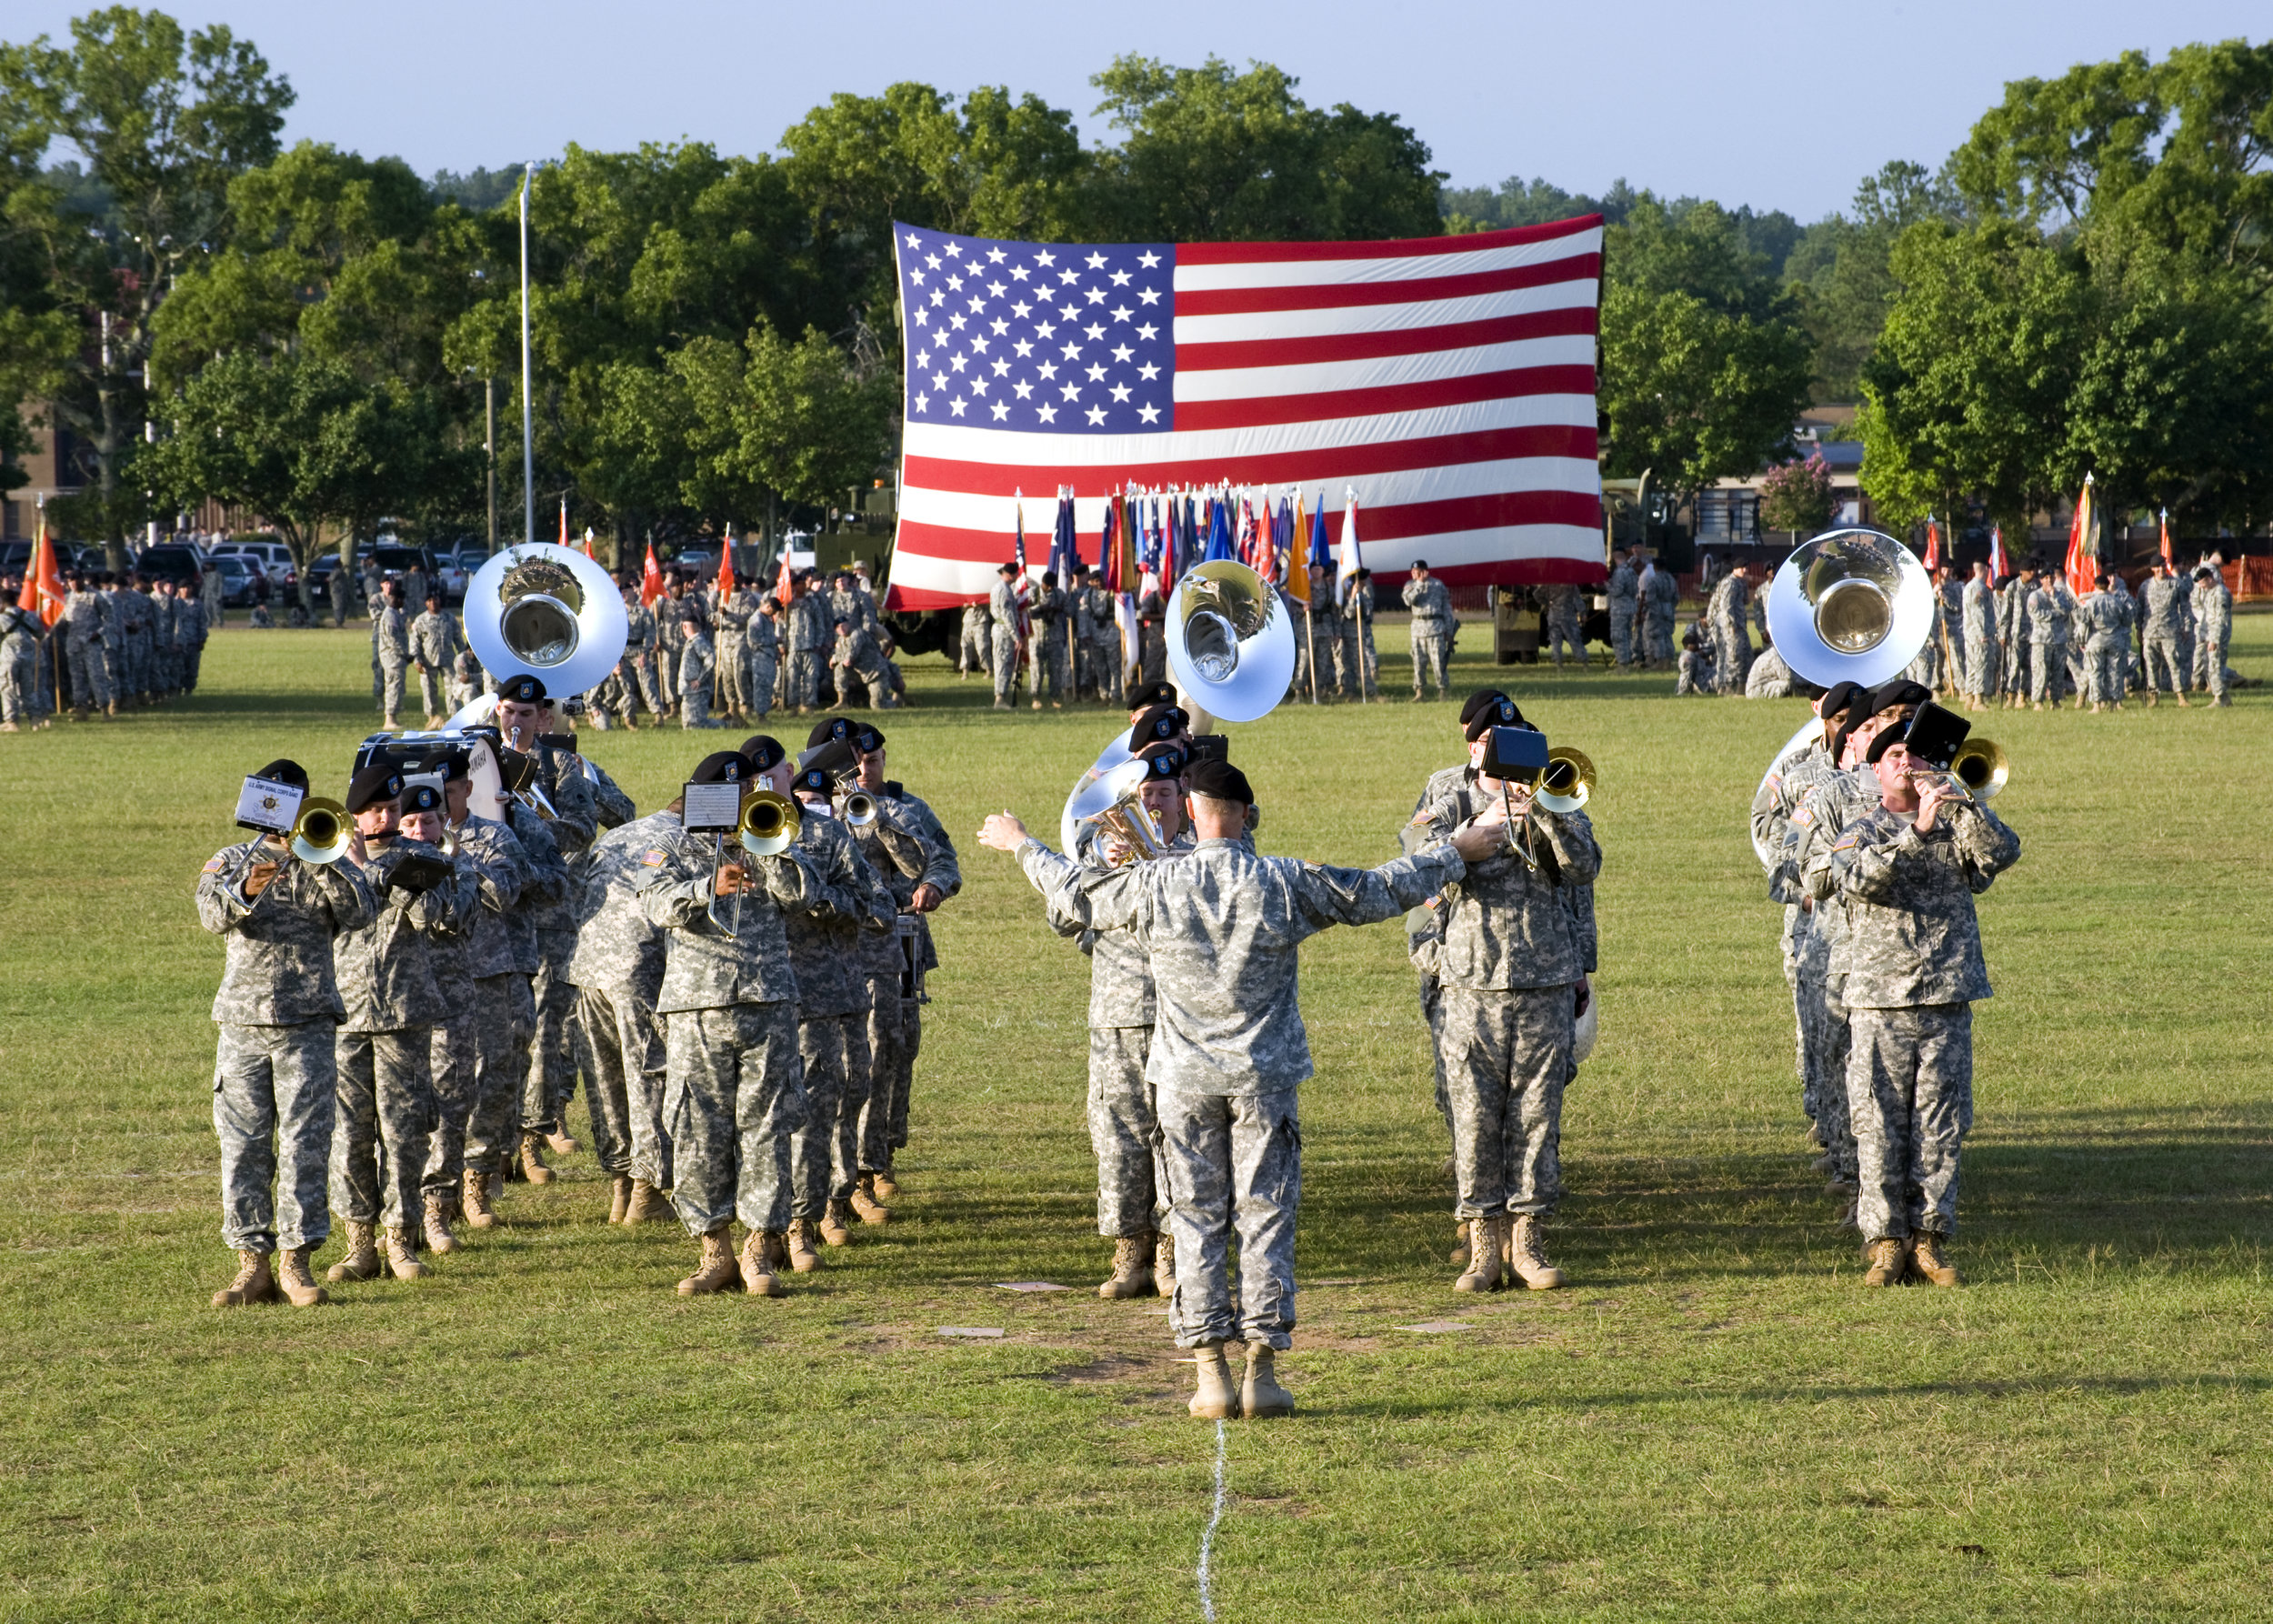 U.S._Soldiers,_of_434th_Signal_Corps_Band_play_on_the_field,_during_the_opening_ceremony,_at_Signal_Center_commanding_general_change_of_command_ceremony,_on_Fort_Gordon,_Ga.,_July_21,_2010_100721-A-NF756-001.jpg